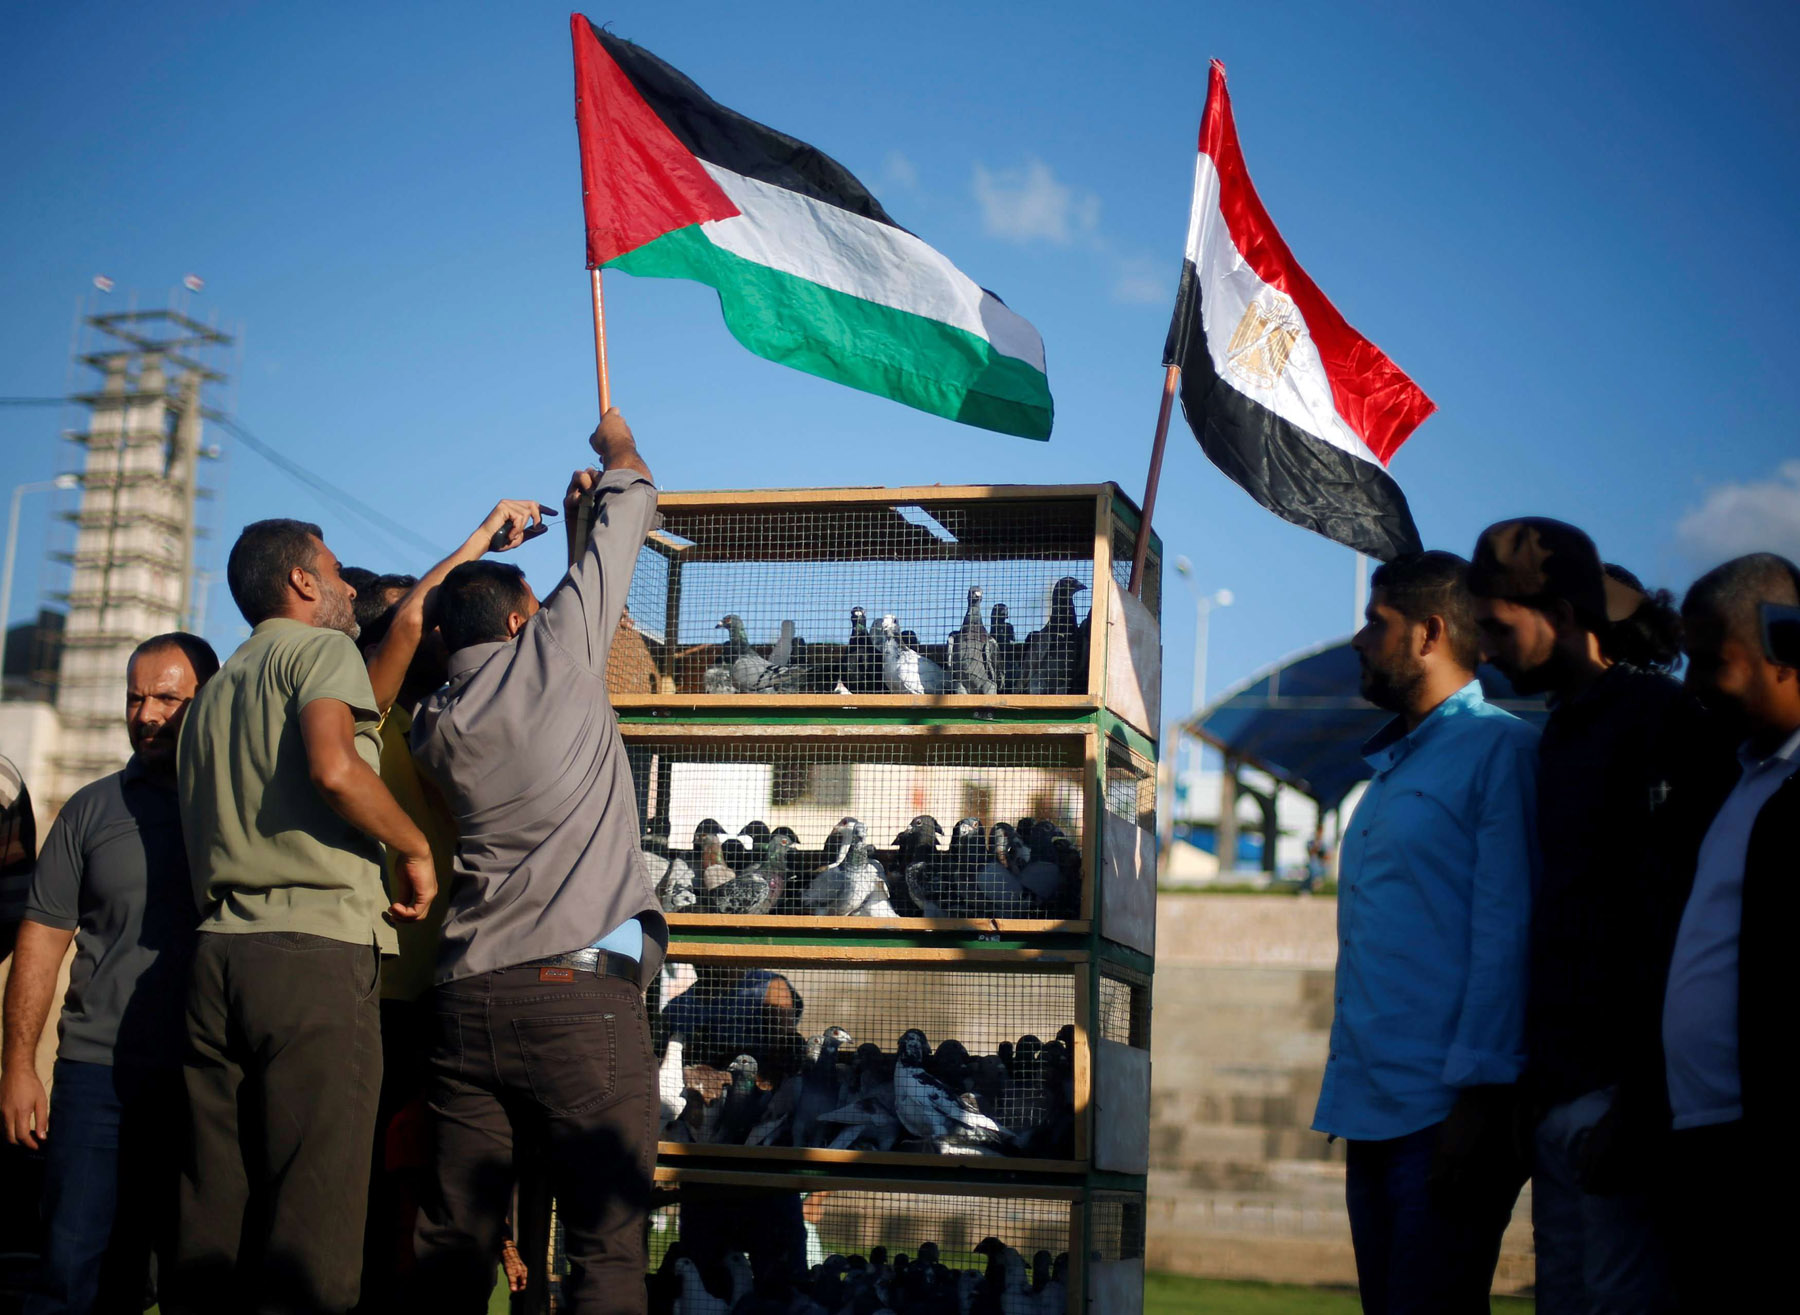 A man puts up a Palestinian flag over a cage before releasing pigeons to show support for reconciliation between rival factions Hamas and Fatah. (Reuters)